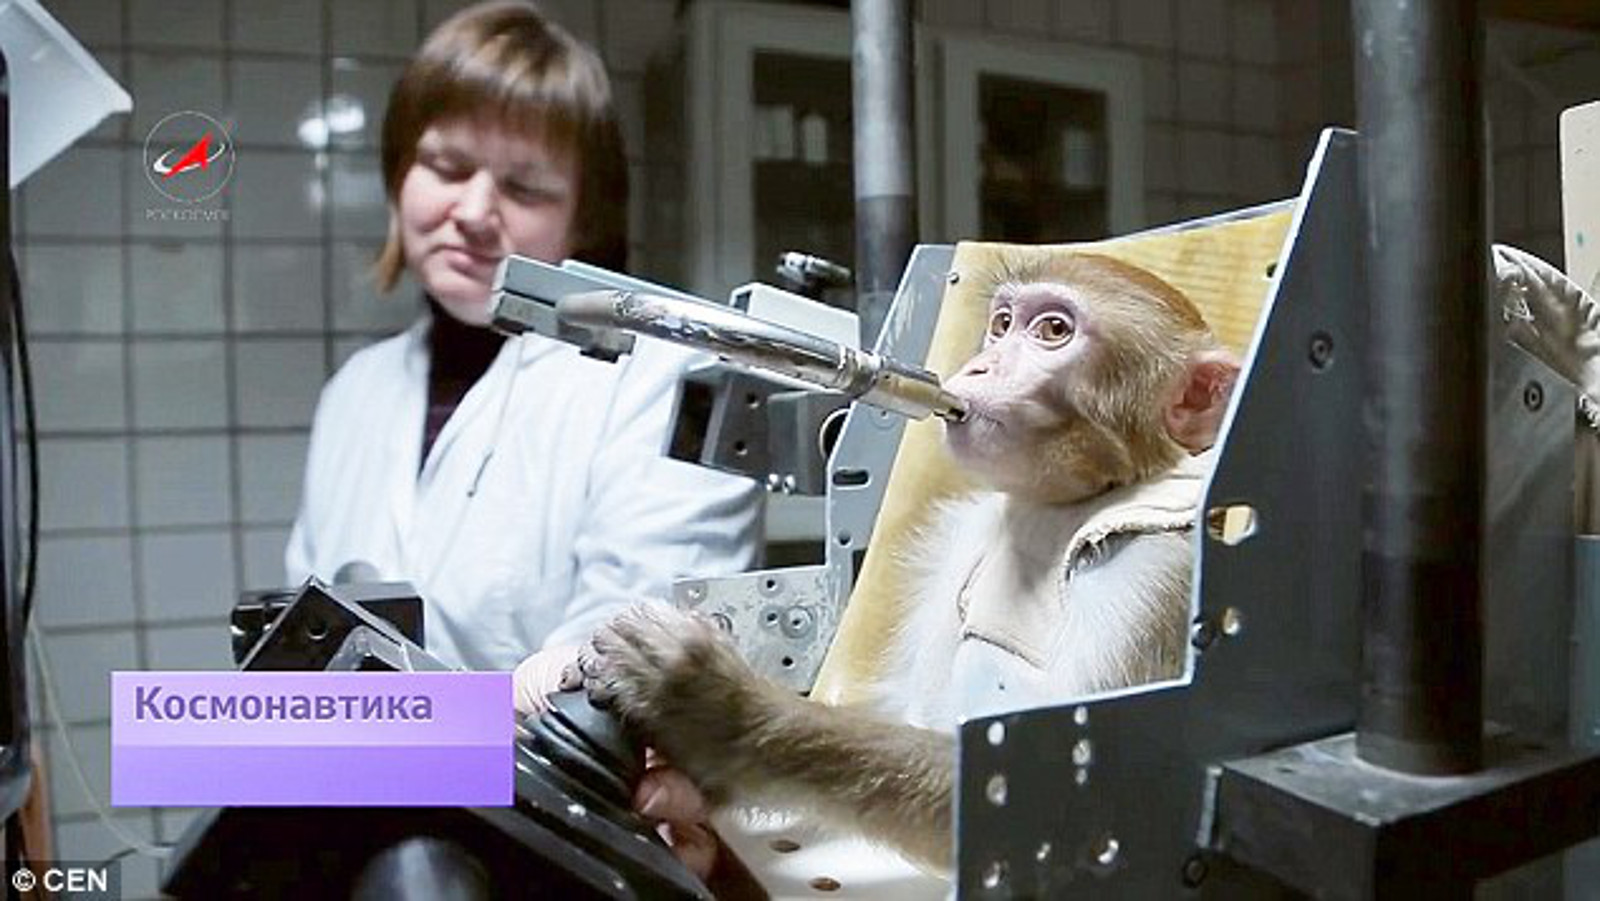 WTH?!? Russia is Sending Four Monkeys to Mars Next Year – You Can Help Them